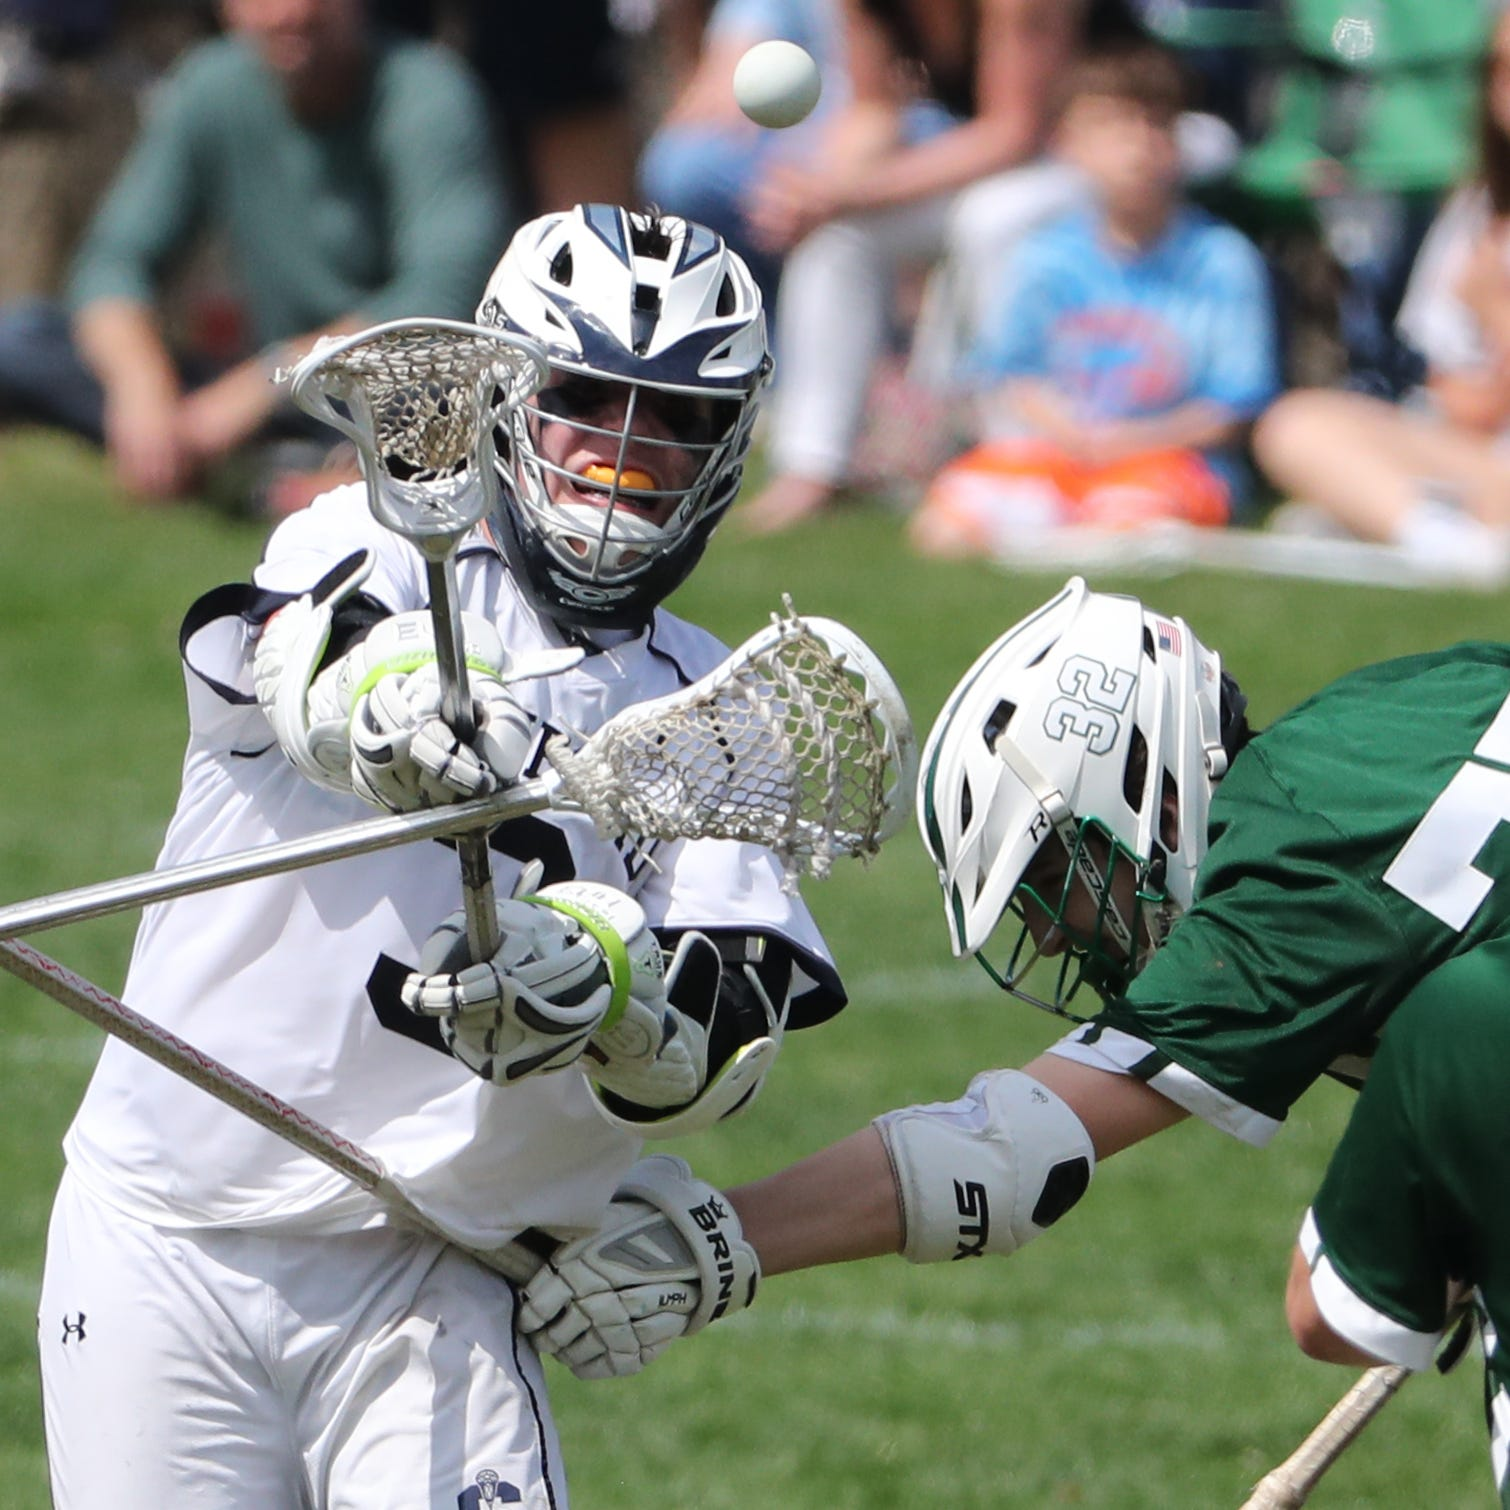 Sanford holds on to upset No. 4 Archmere in boys lacrosse